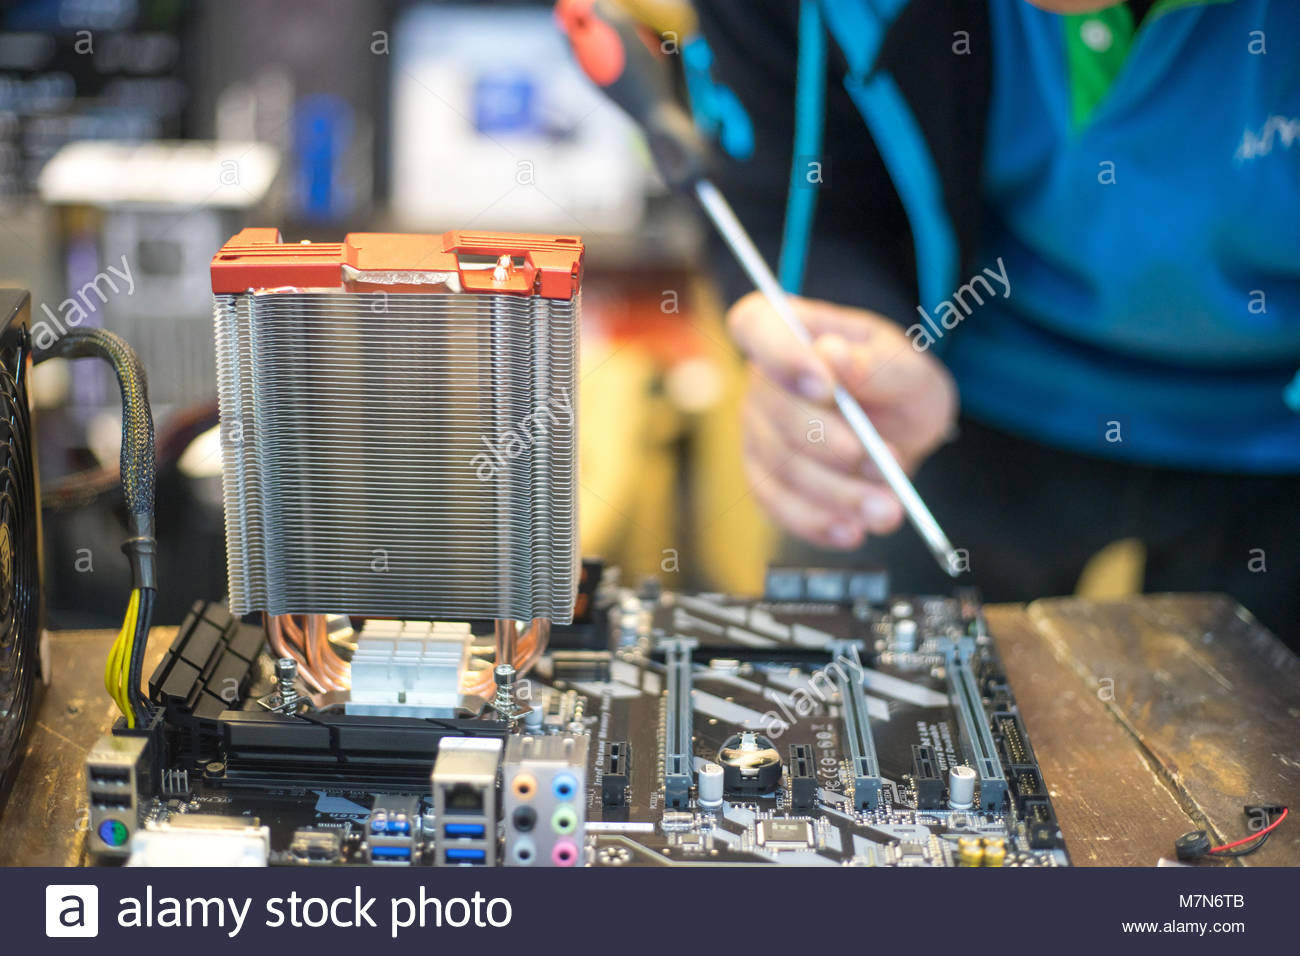 The technician hold the screwdriver for repairing the computer. the concept of computer hardware, repairing, upgrade - Stock Image